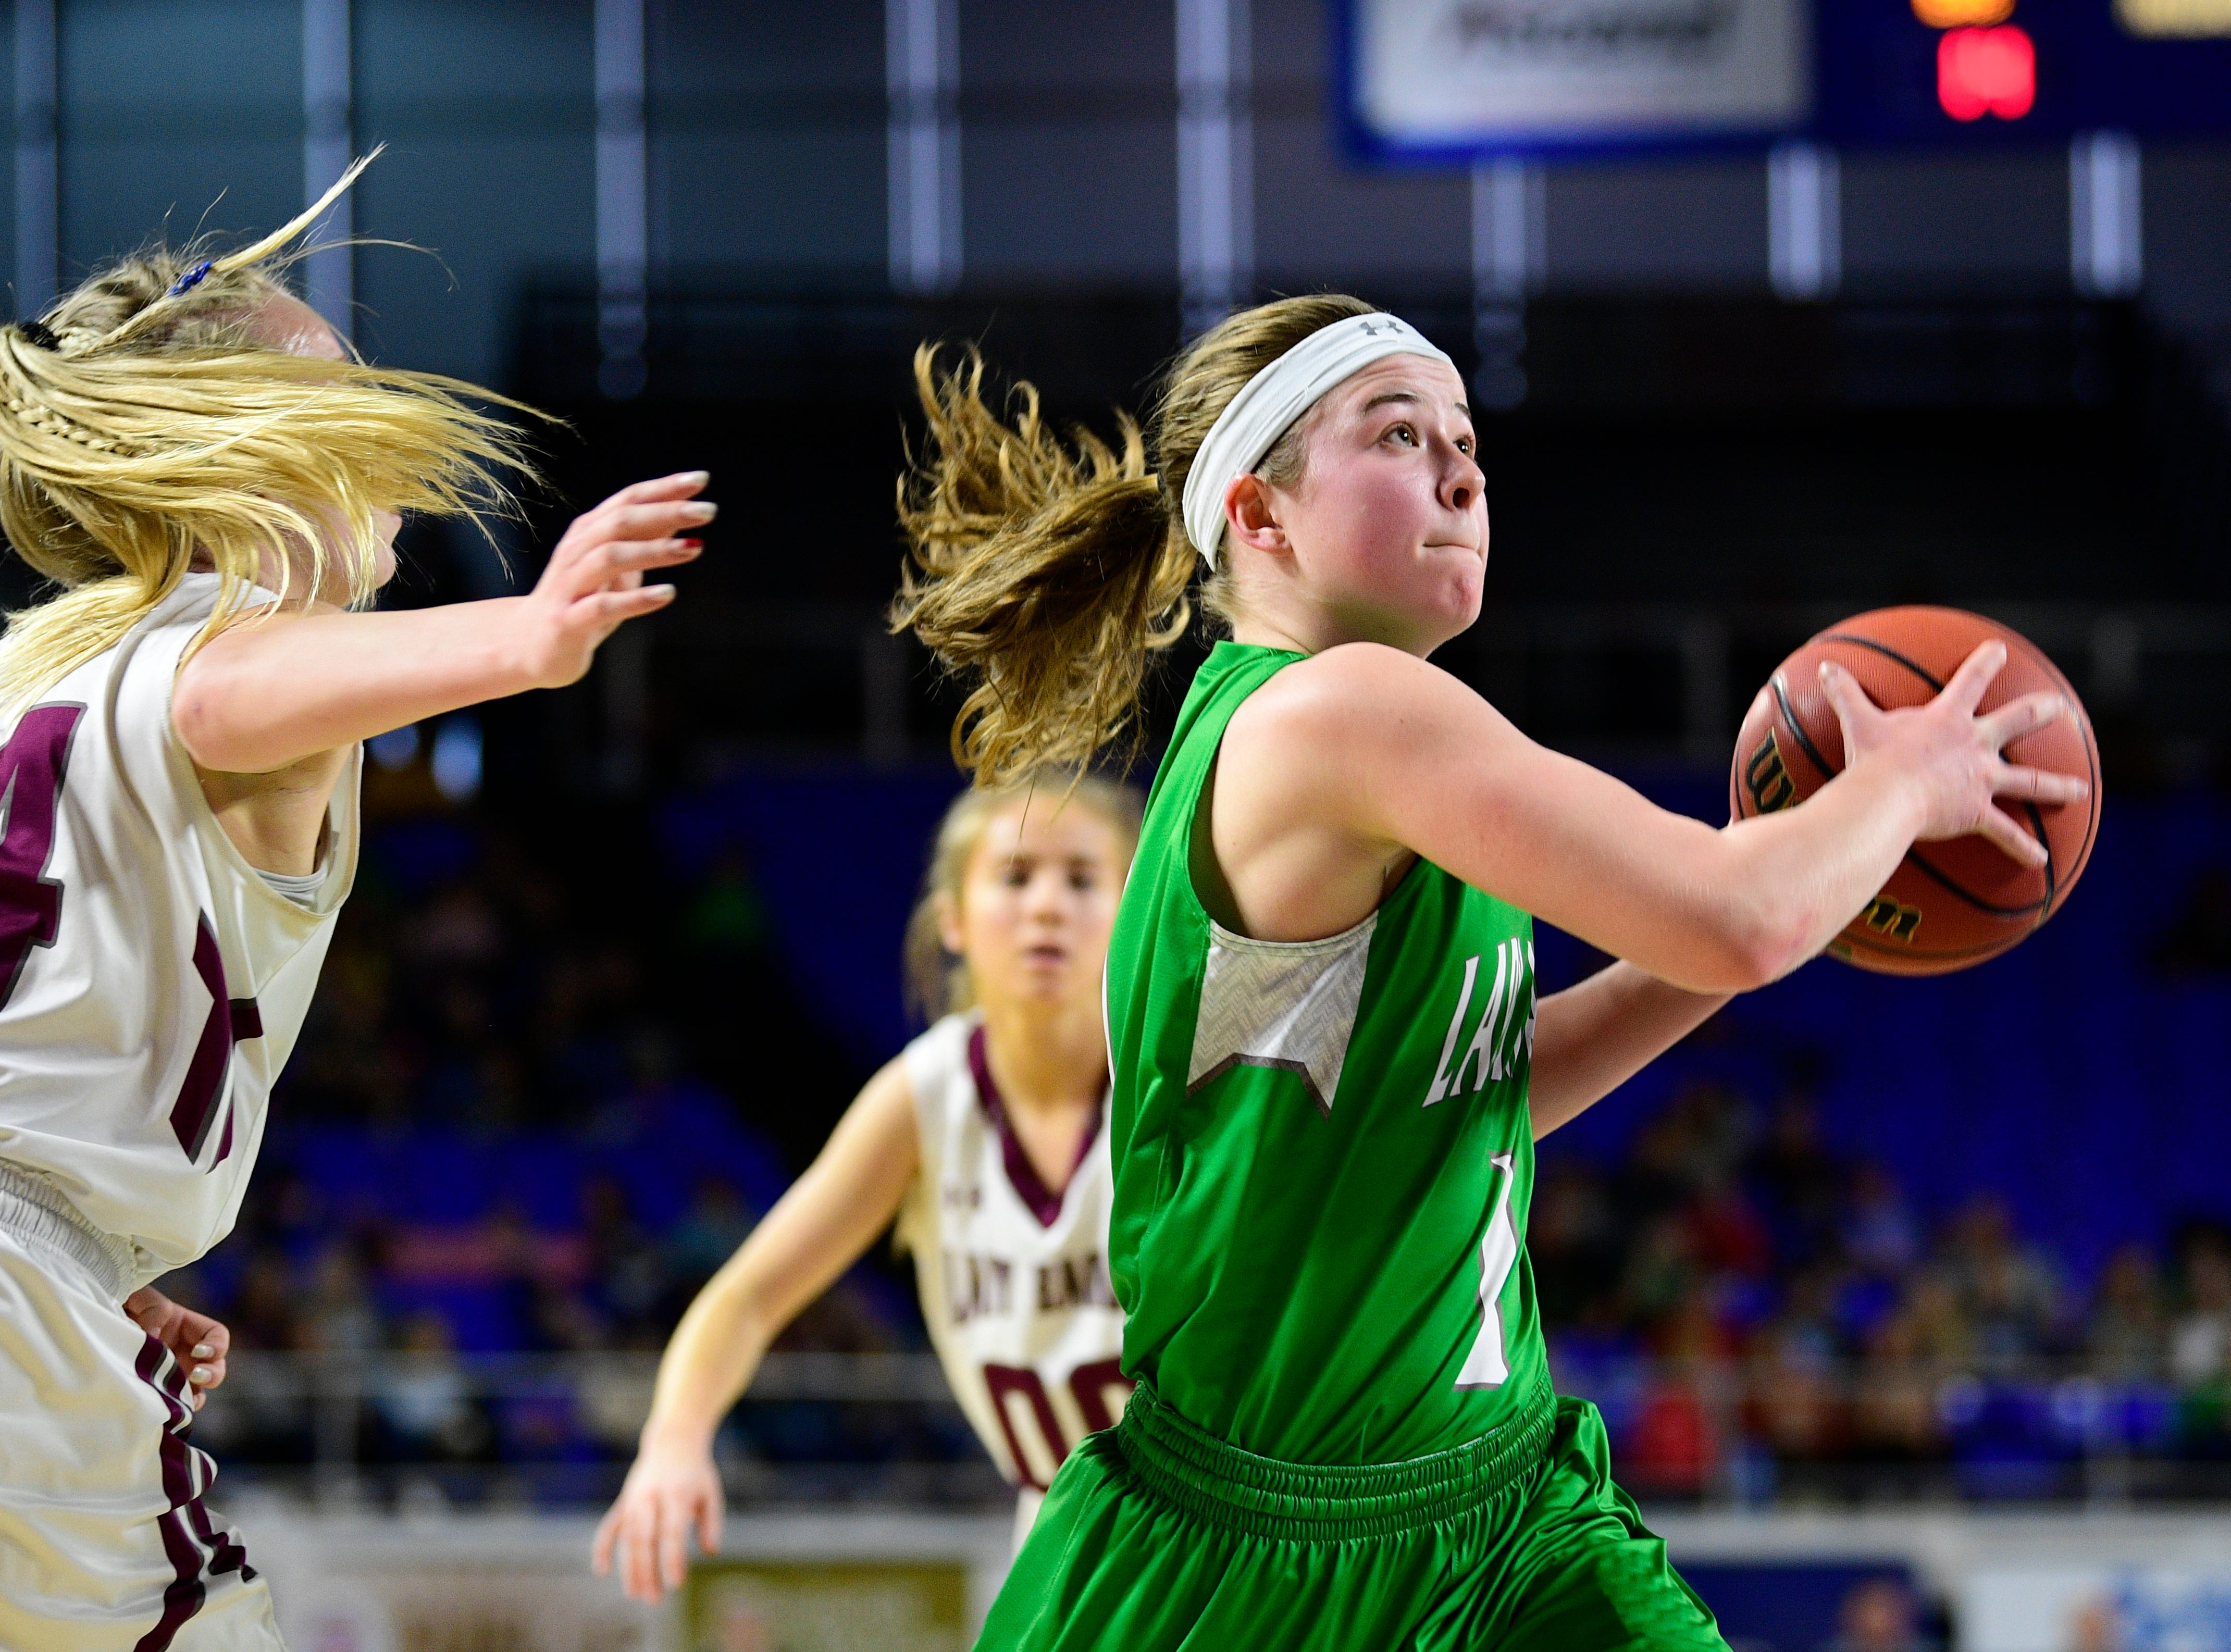 Midway's Caitlyn Ross (1) goes for a layup as Eagleville's Anna Grace Clement (24) defends during a game between Eagleville and Midway at the TSSAA girls state tournament at the Murphy Center in Murfreesboro, Tennessee on Thursday, March 7, 2019.